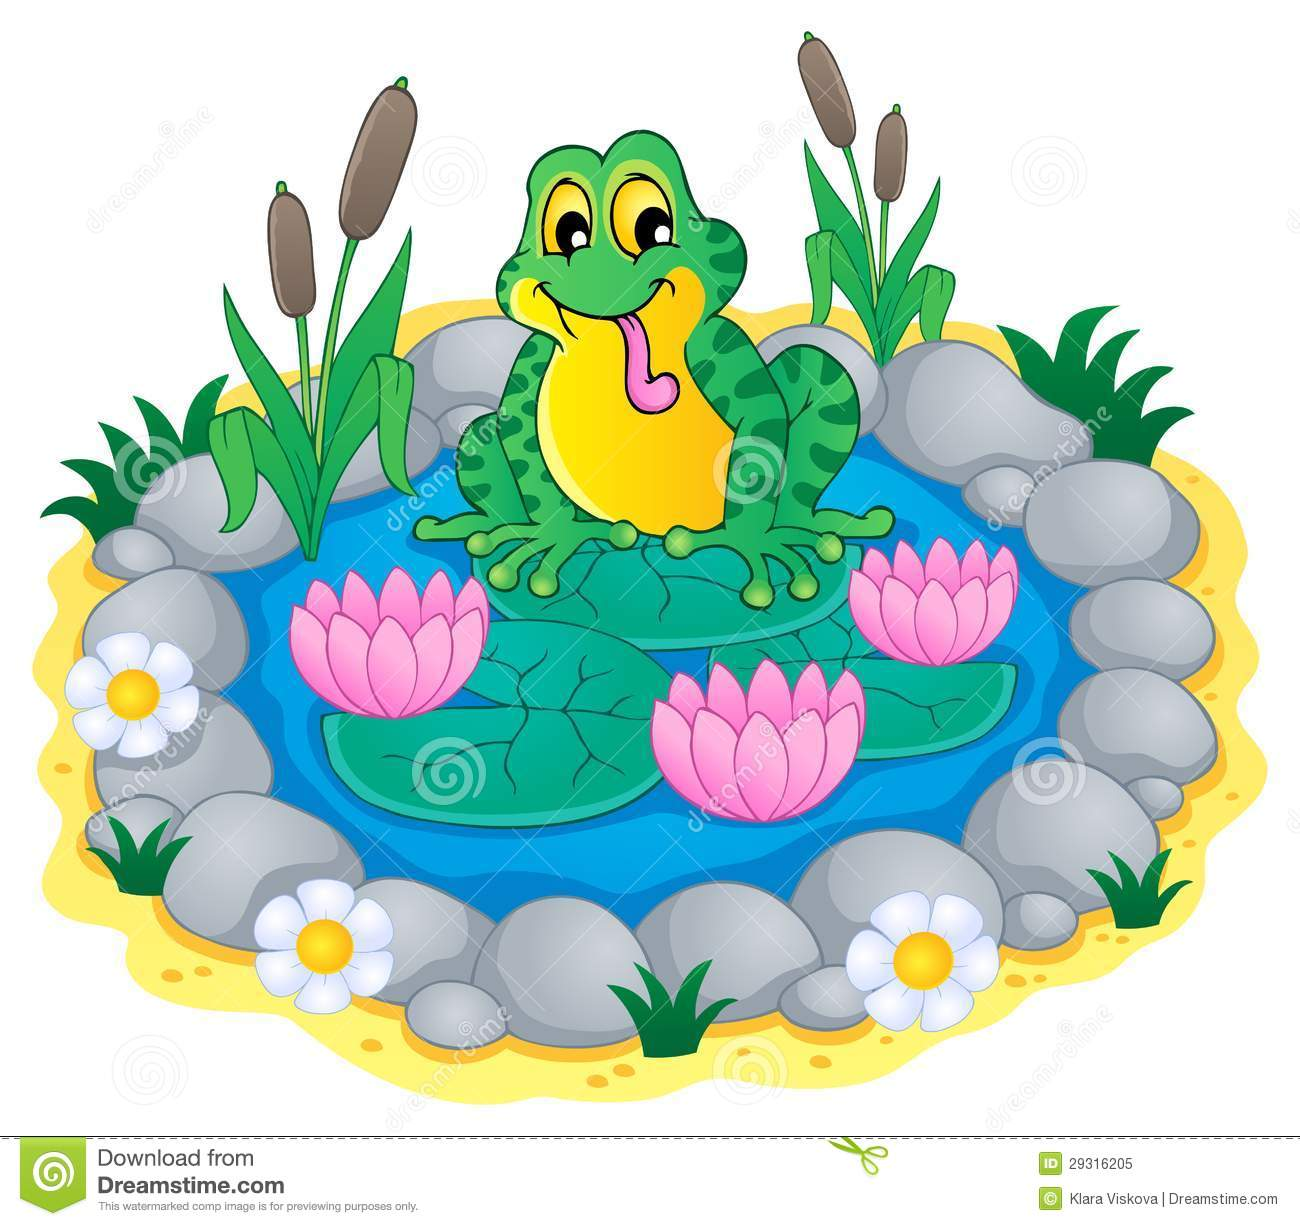 Displaying 18 Images For Pond Ecosystem -Displaying 18 Images For Pond Ecosystem Clipart-14